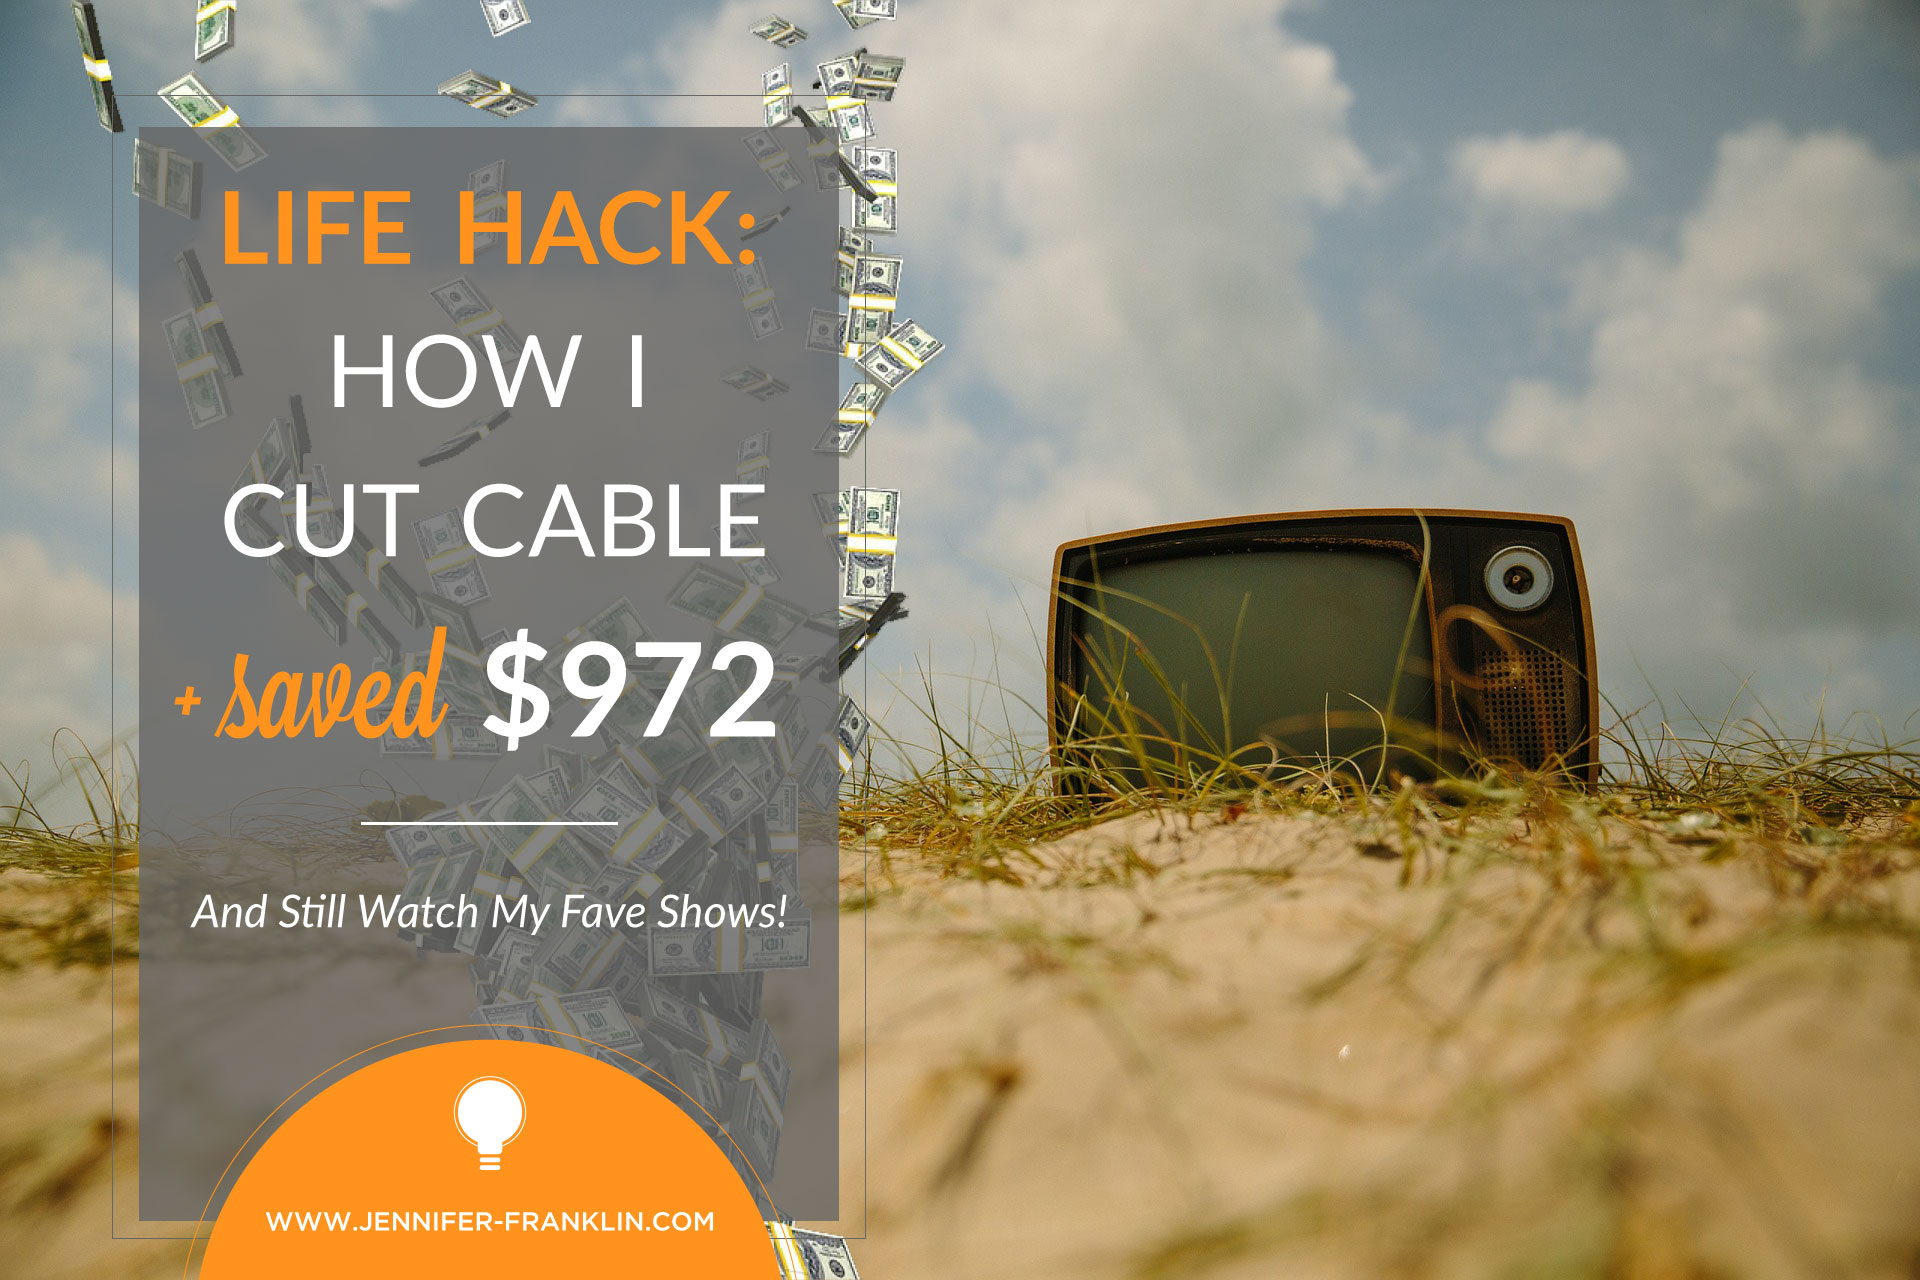 How to cancel cable save money and still watch your fave shows. I show you how I saved $972 last year at Jennifer-Franklin.com.